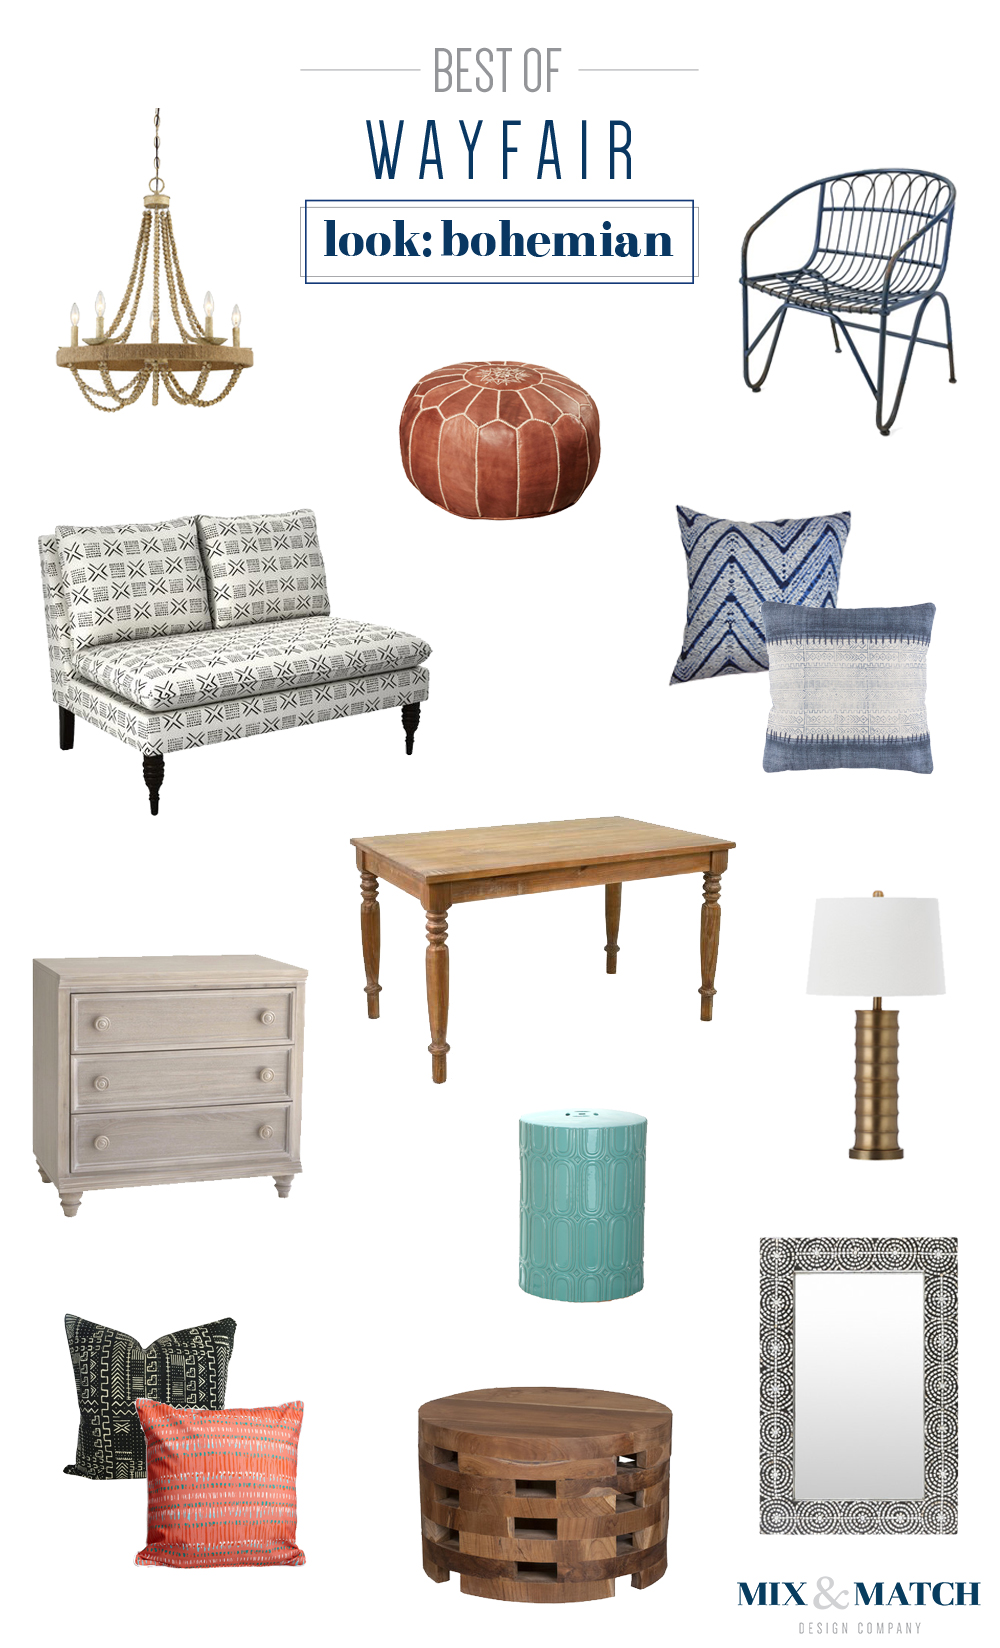 Best of Wayfair's bohemian furniture and home decor collection